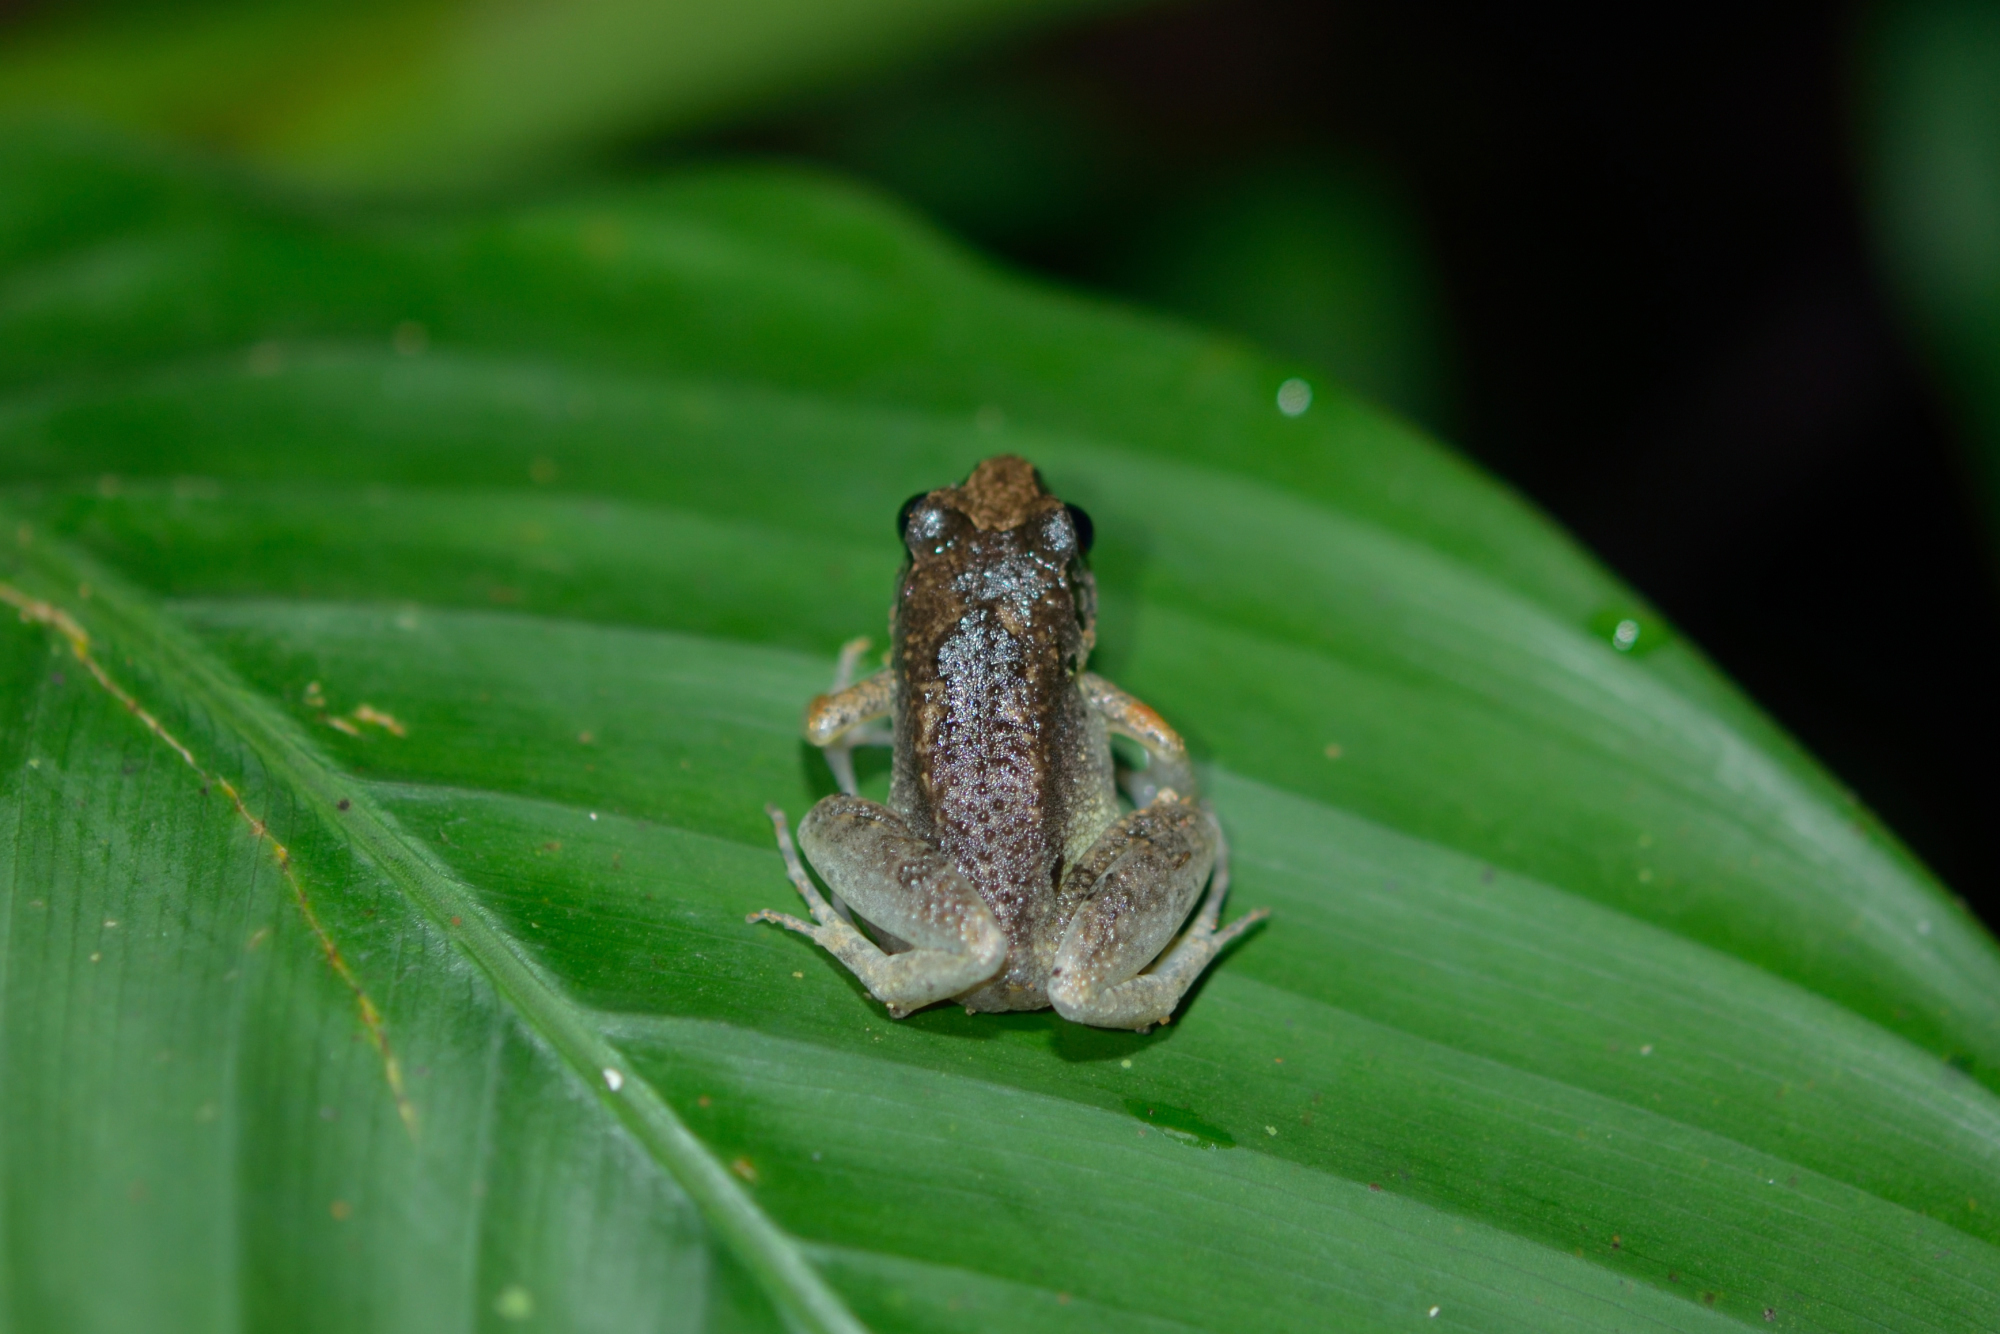 1. I think this is just a weakly patterned eared river frog. Any other opinions?